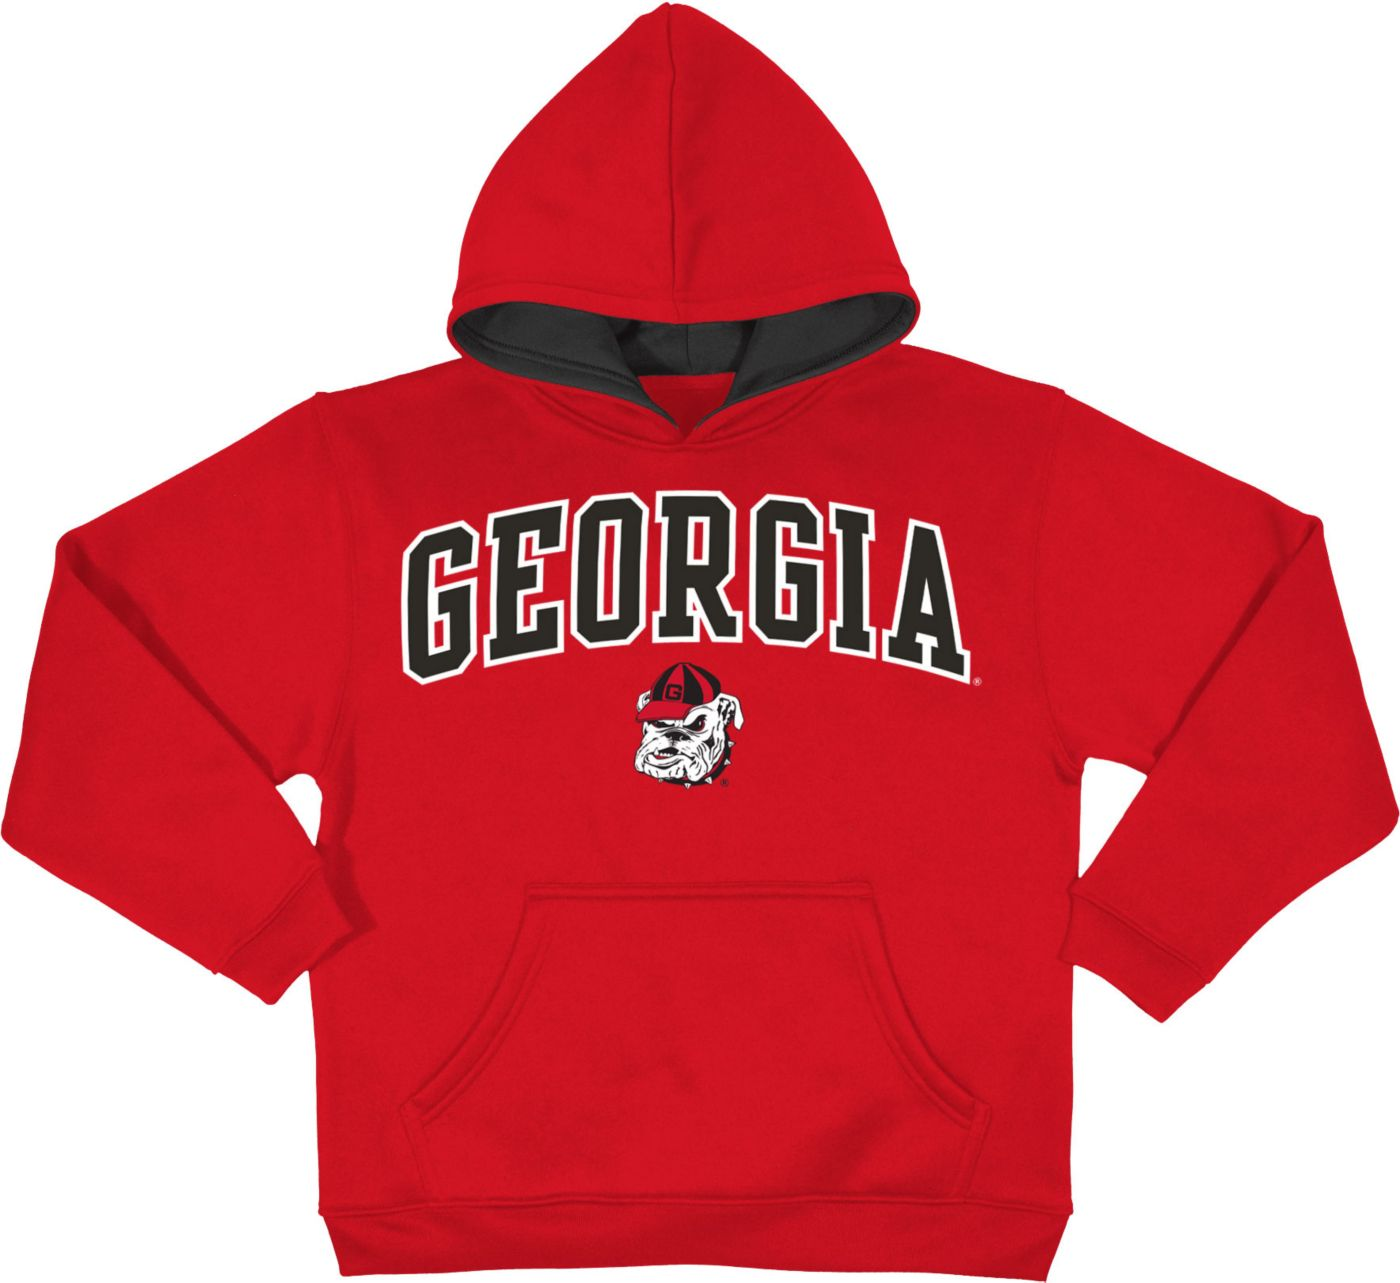 Champion Youth Georgia Bulldogs Red Pullover Hoodie